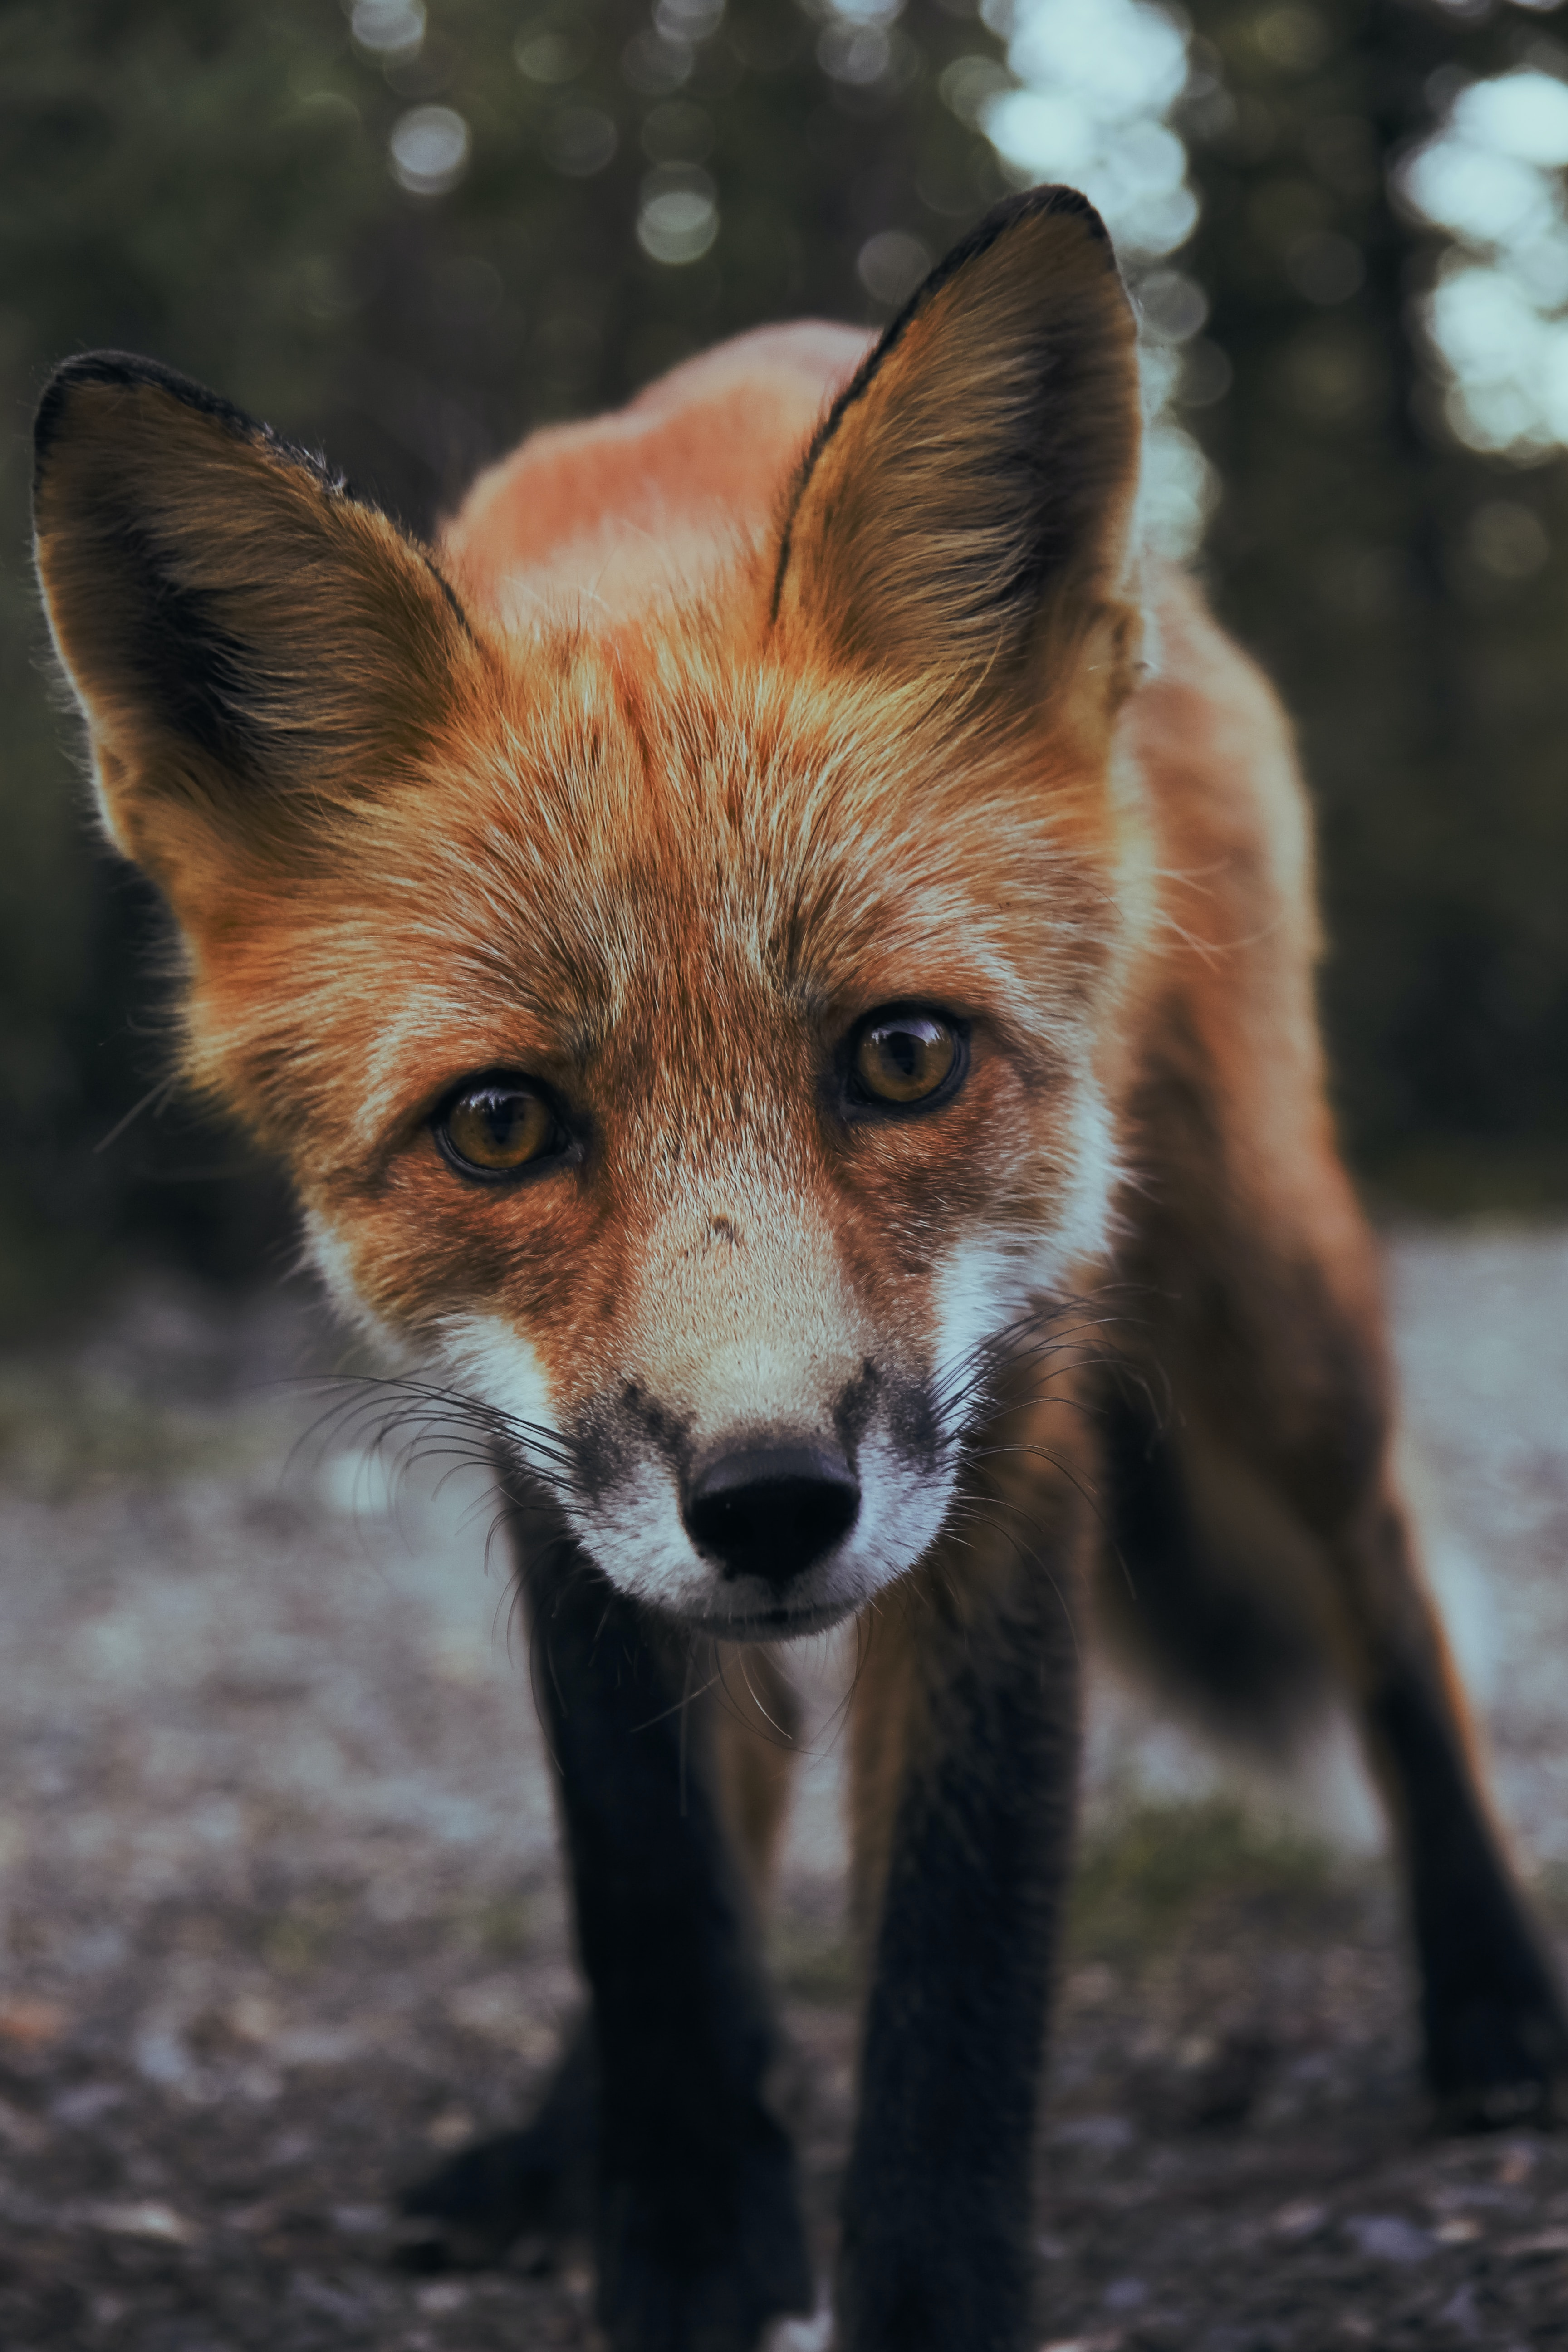 A fox peering directly into the camera that is photographing him from a low angle.